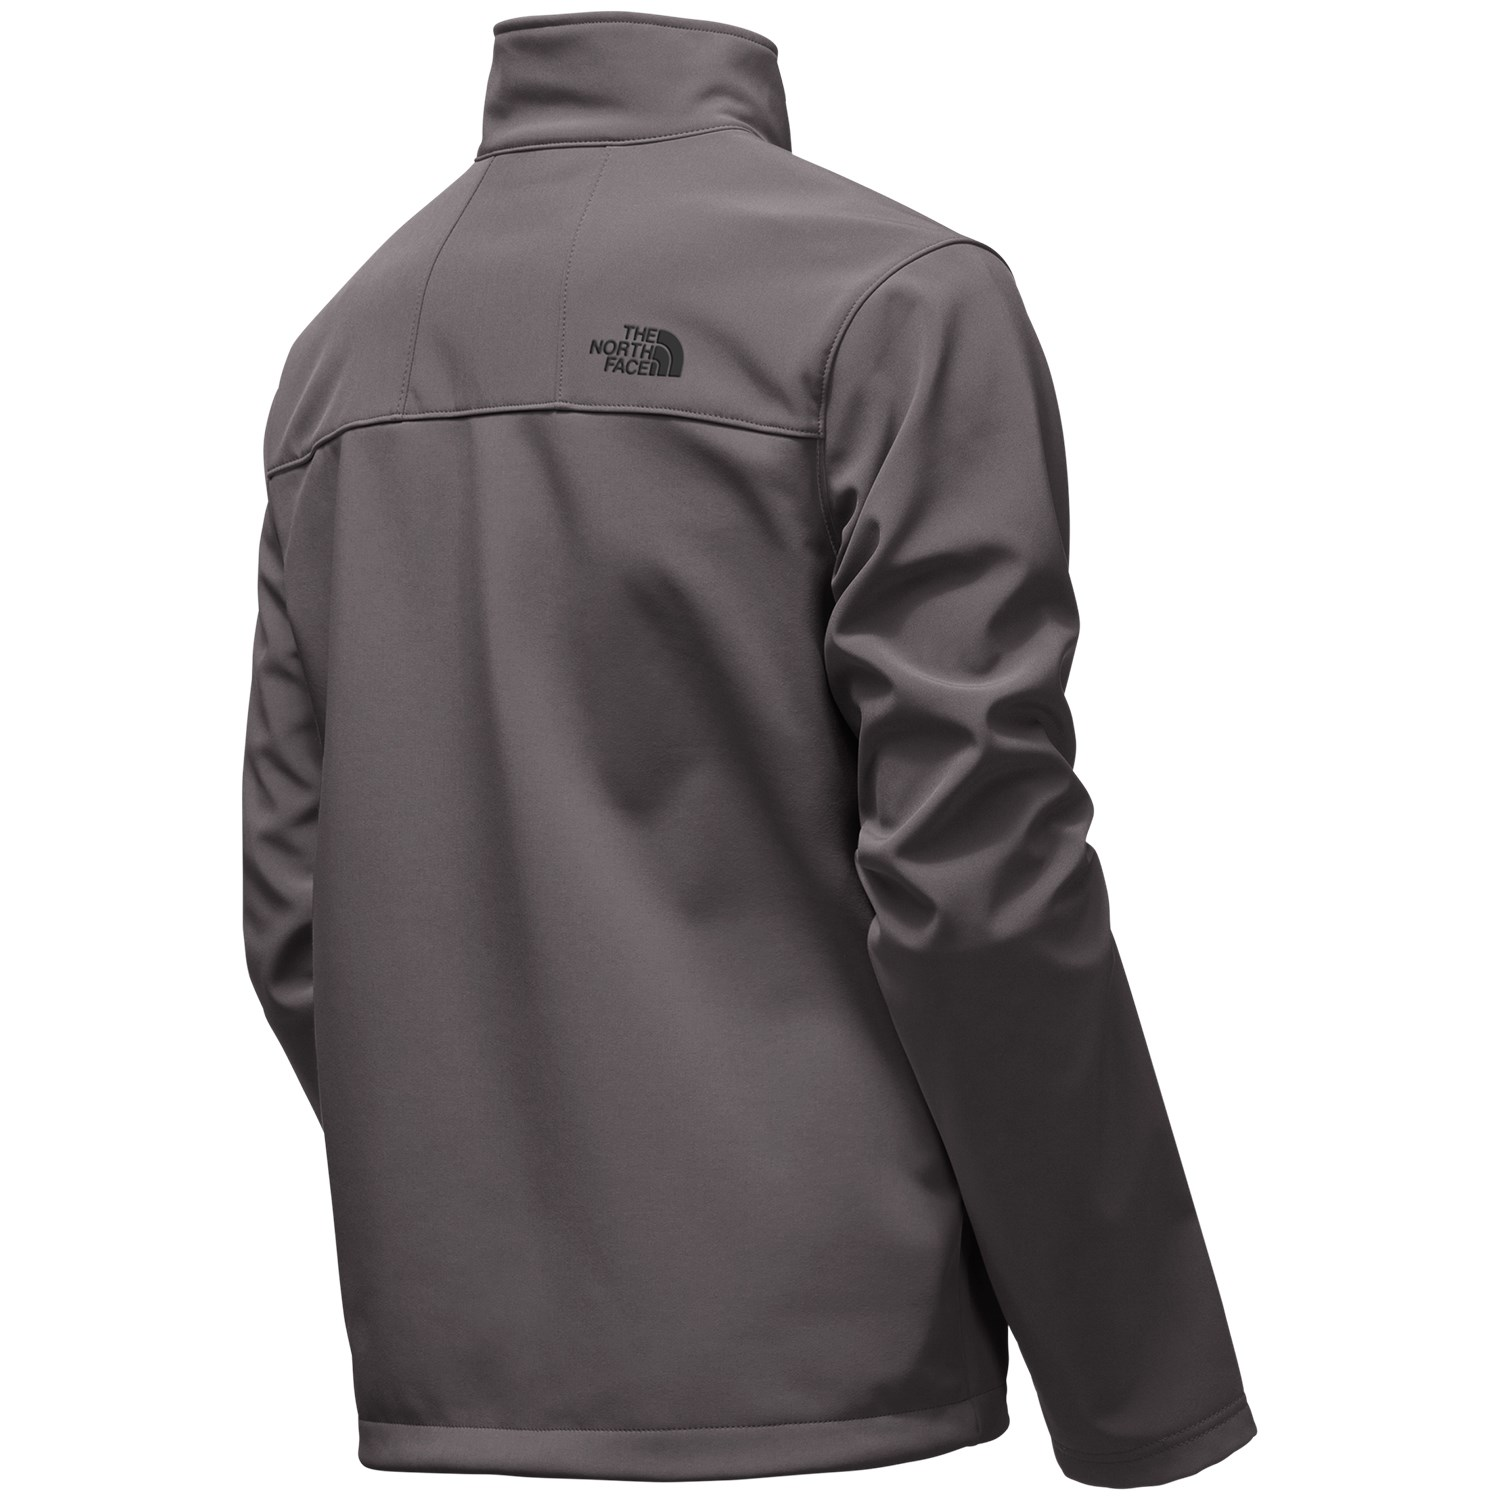 420340a621b4 The North Face Apex Bionic 2 Jacket